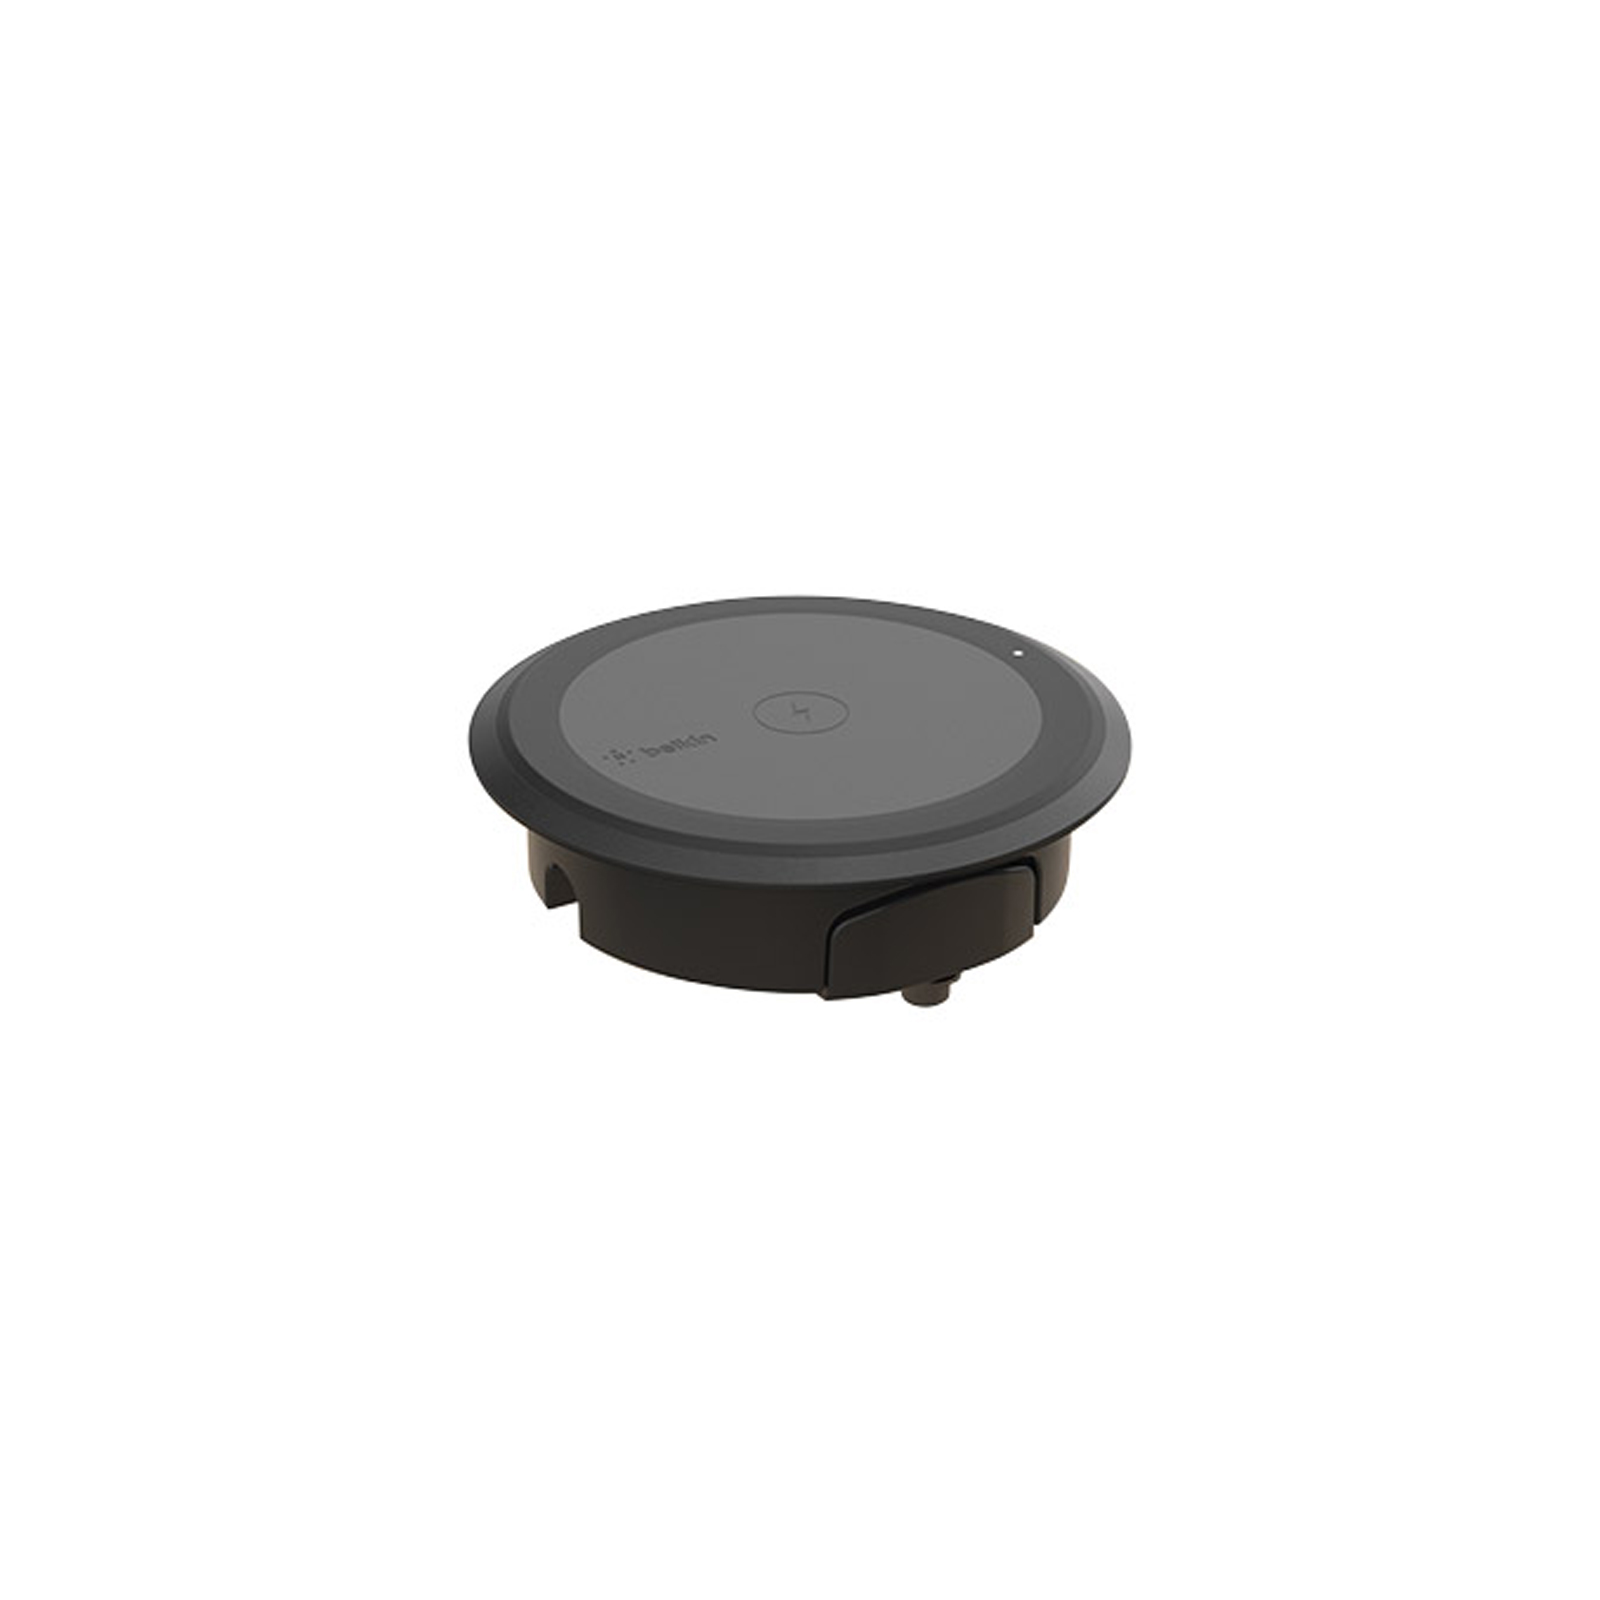 Charging Pads Belkin wireless charging spot for surface installation – Black